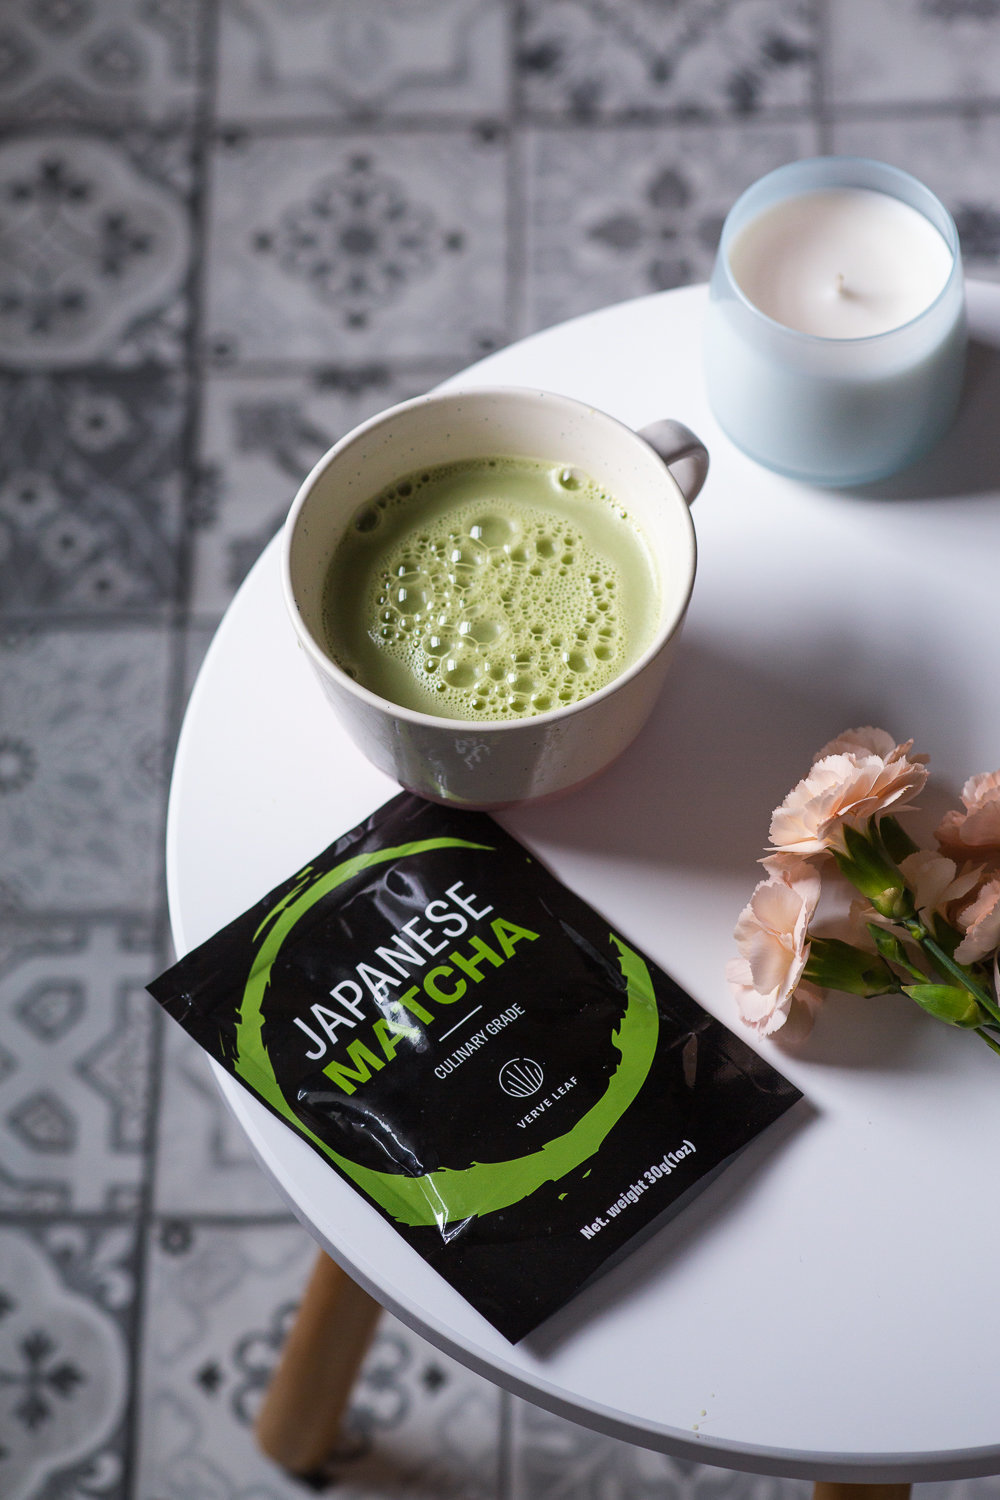 Verve Leaf Matcha - Product Photography - Frenchly Photography - 600